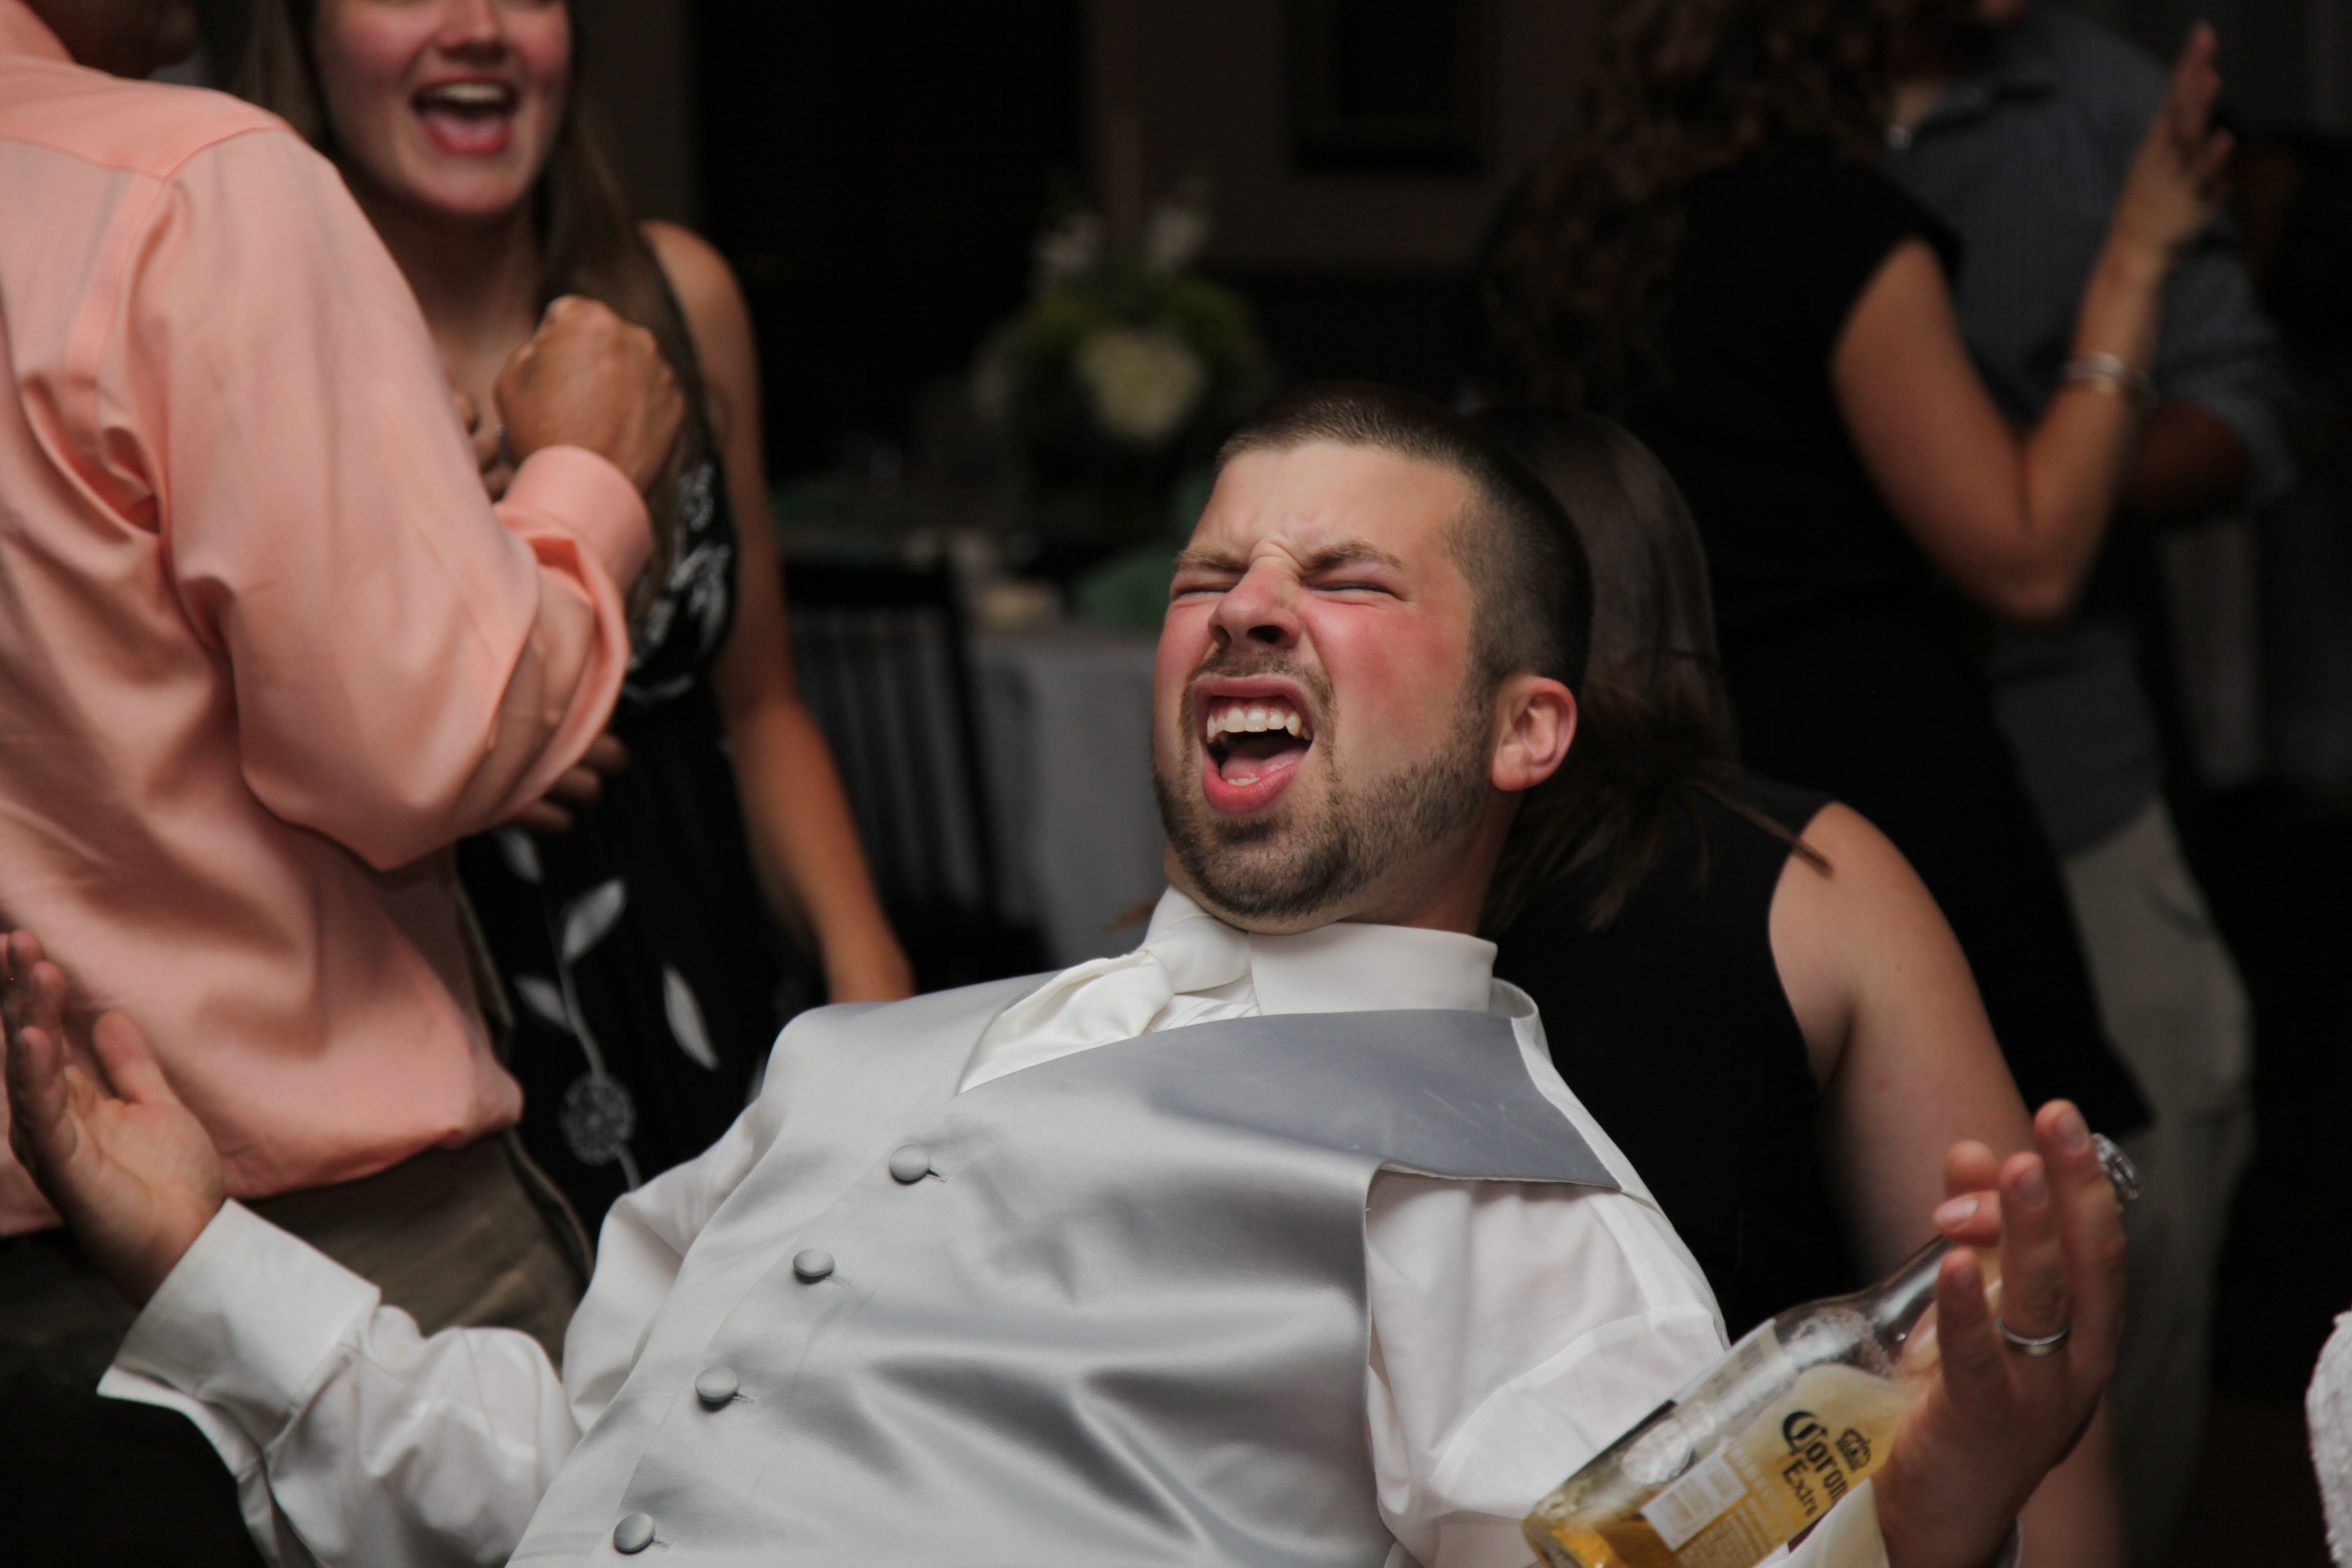 The Groom Rocking Out